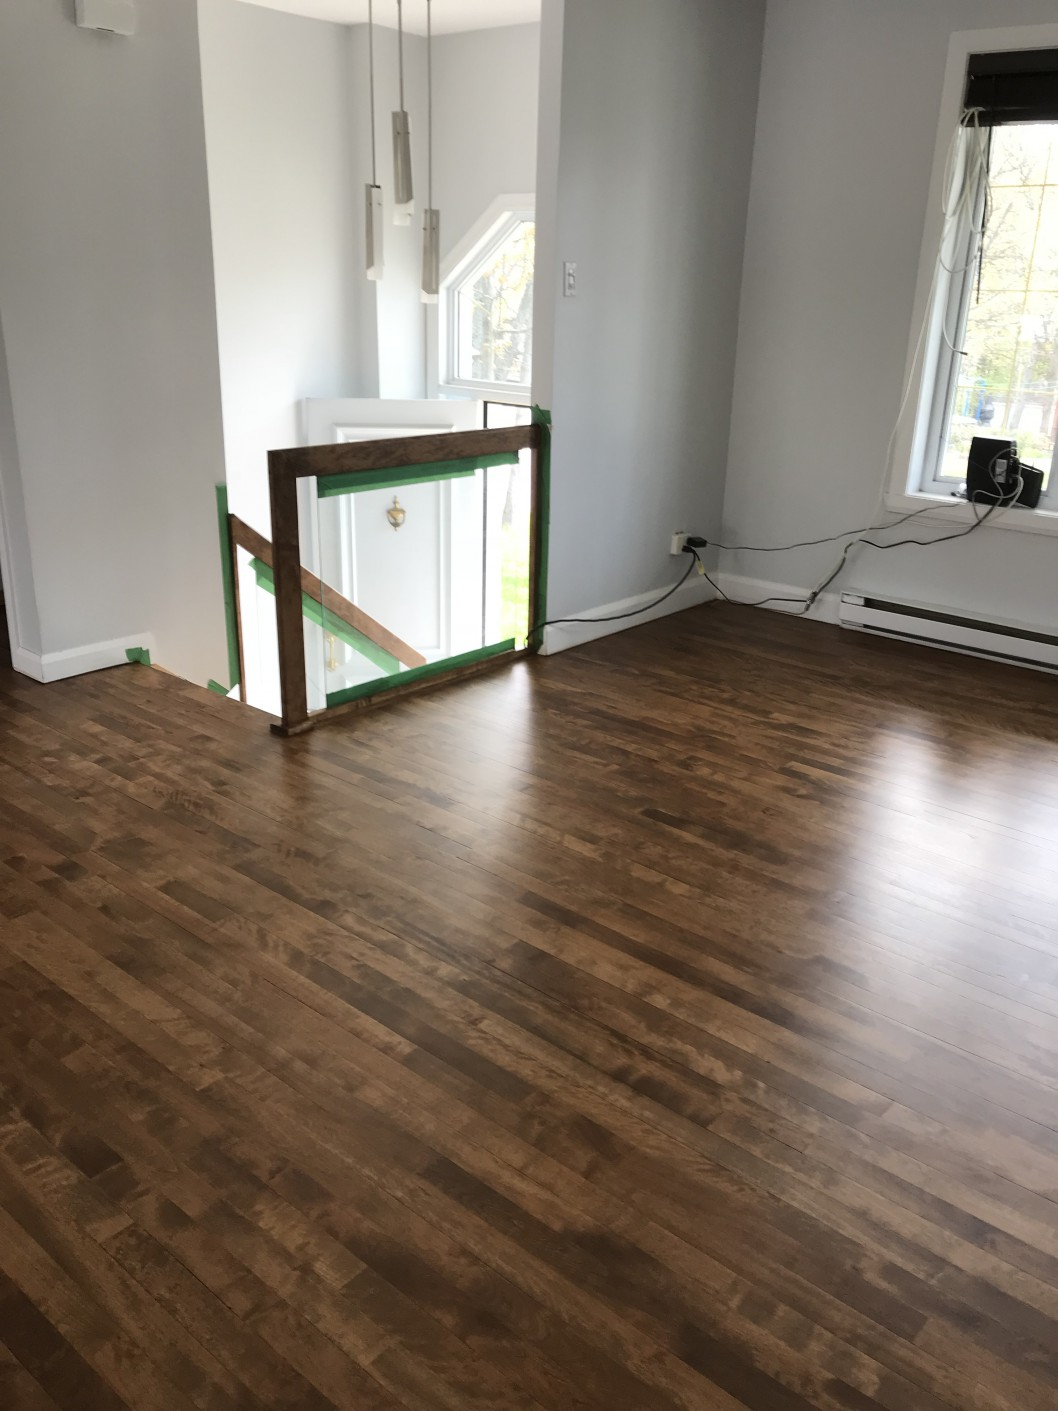 After Flooring